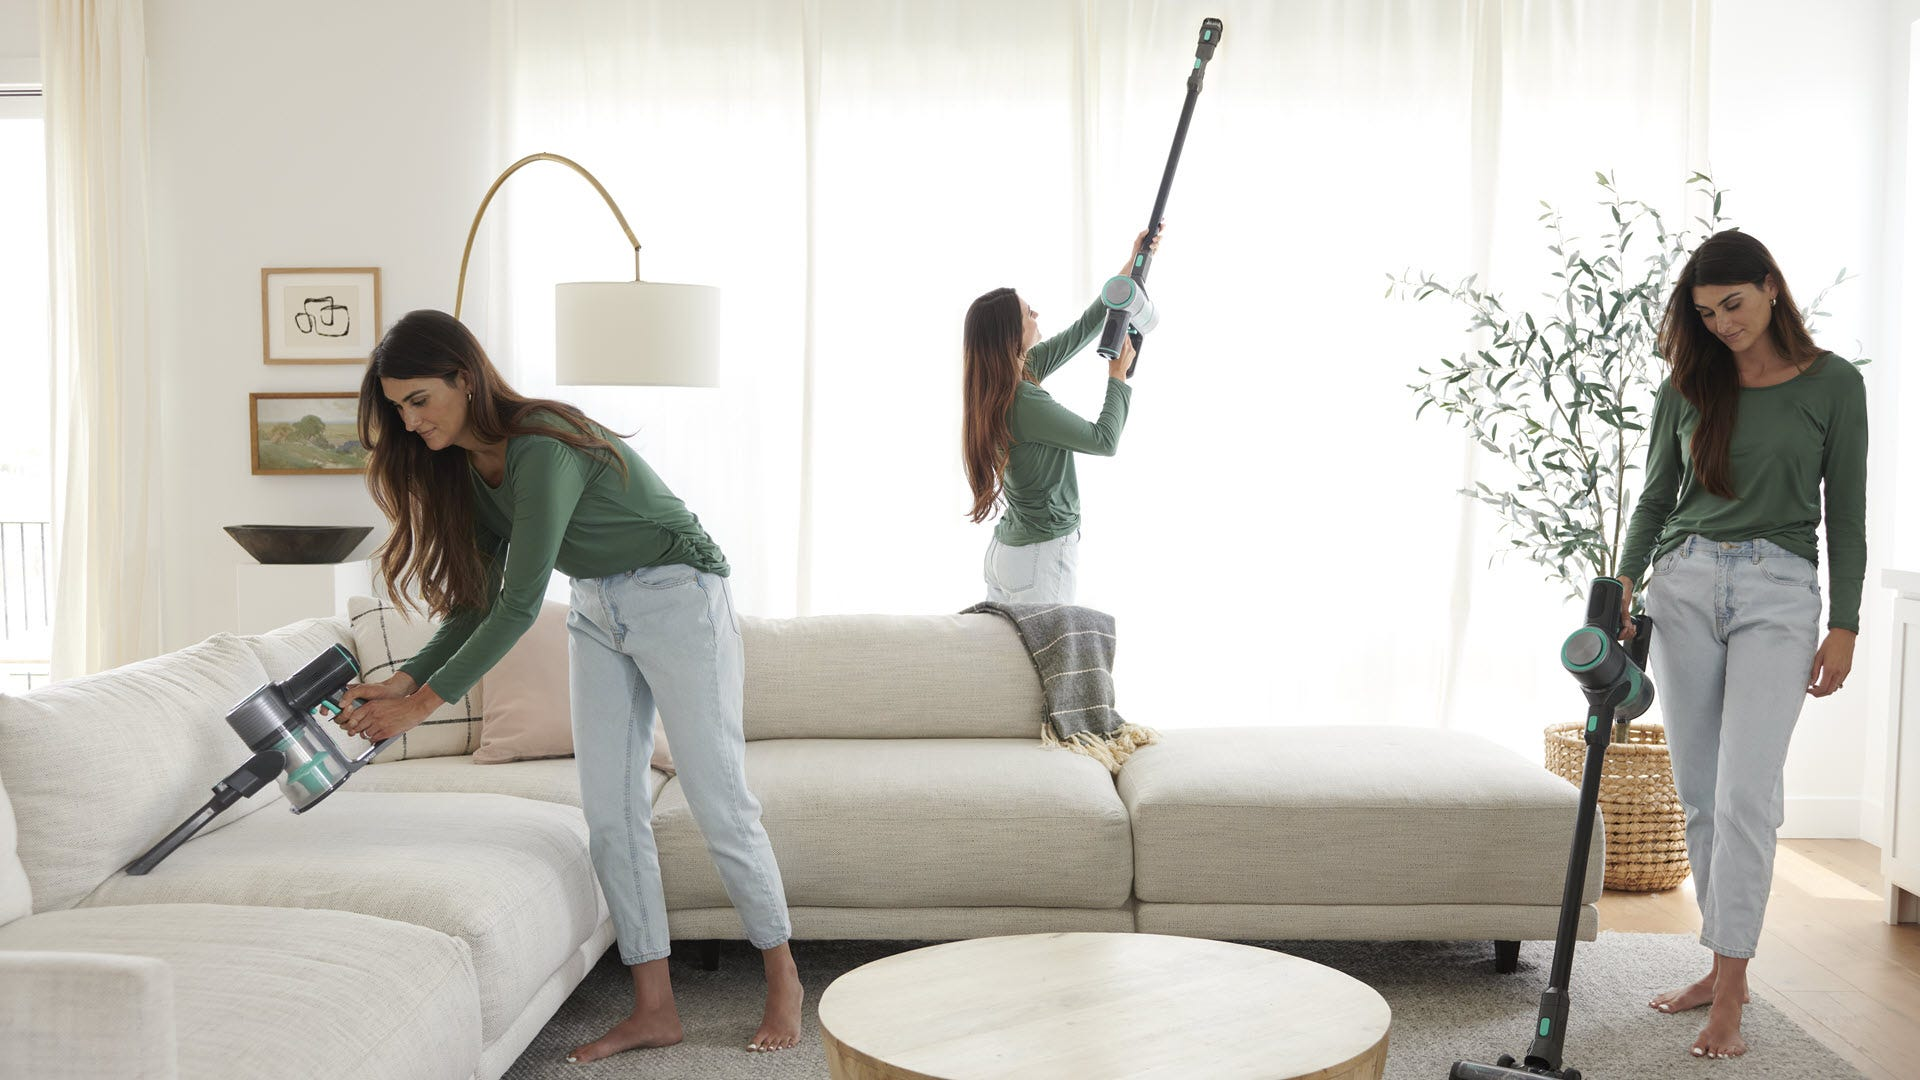 A woman vacuuming a living room using various brush and extension tools.